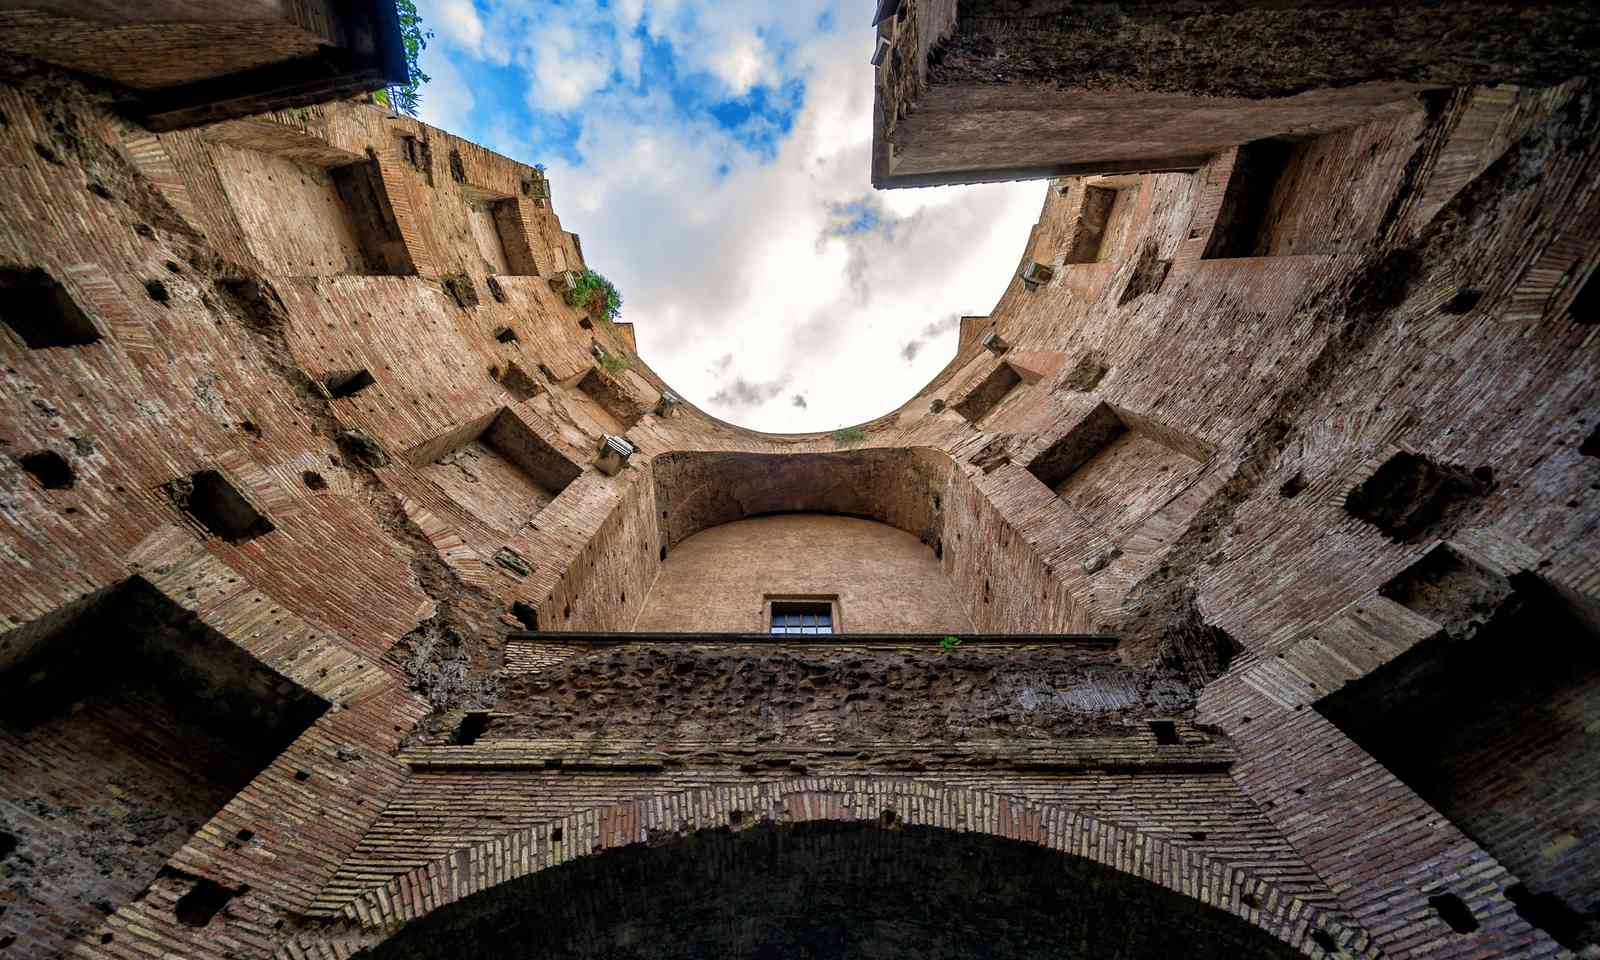 The ruins of the Baths of Diocletian (Shutterstock.com)